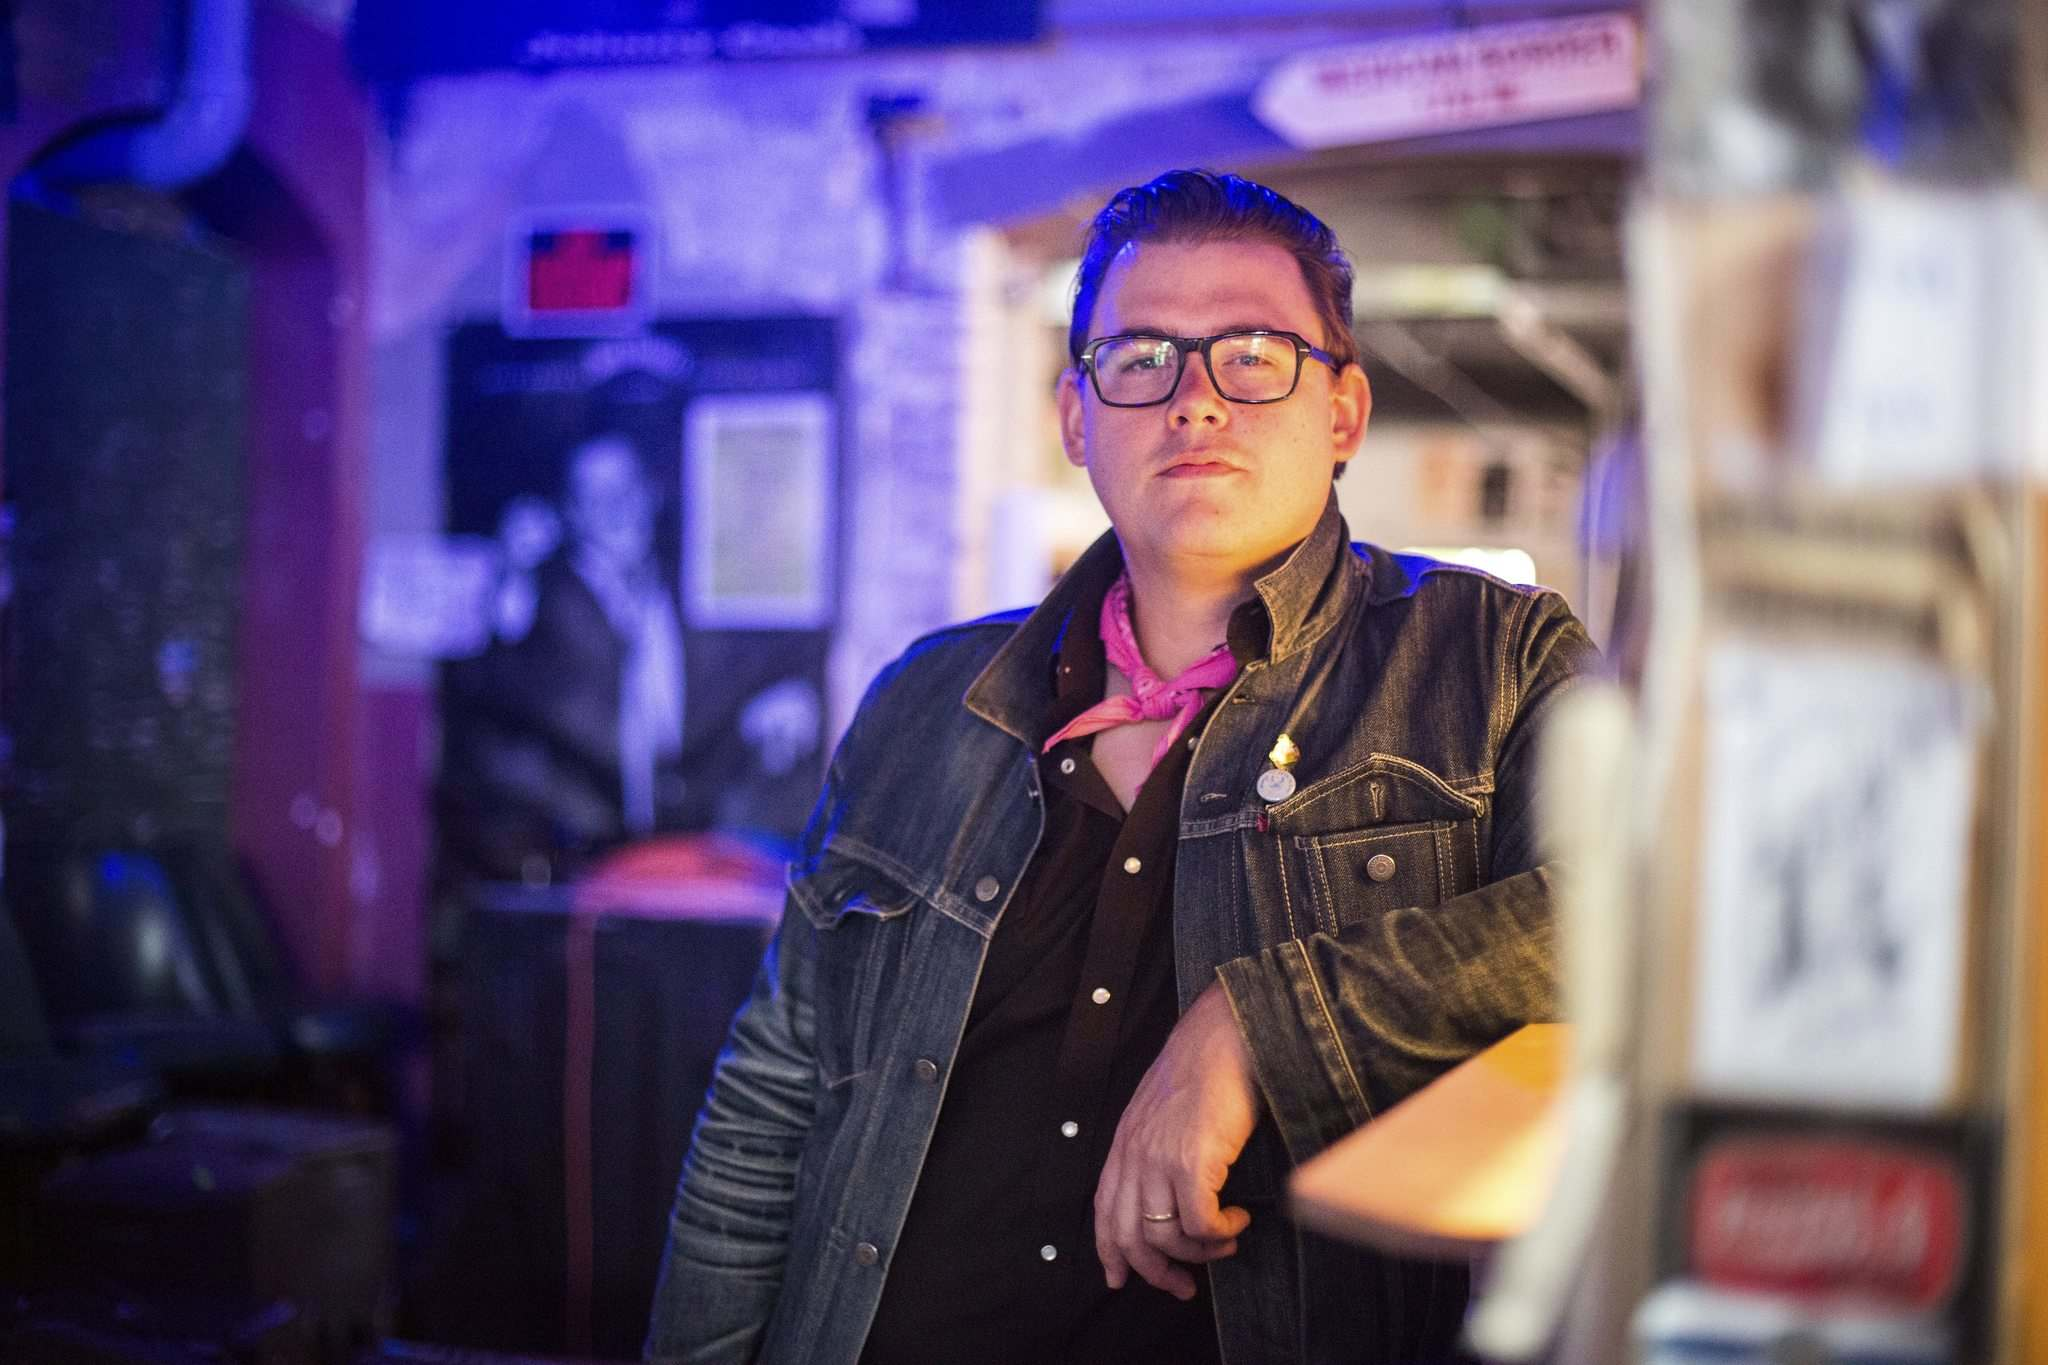 MIKAELA MACKENZIE / WINNIPEG FREE PRESS</p><p>Sean Burns and his band Lost Country have recorded an album of classic truck-driving covers. Proceeds from the new country album will go to support Times Change(d) High & Lonesome Club.</p>